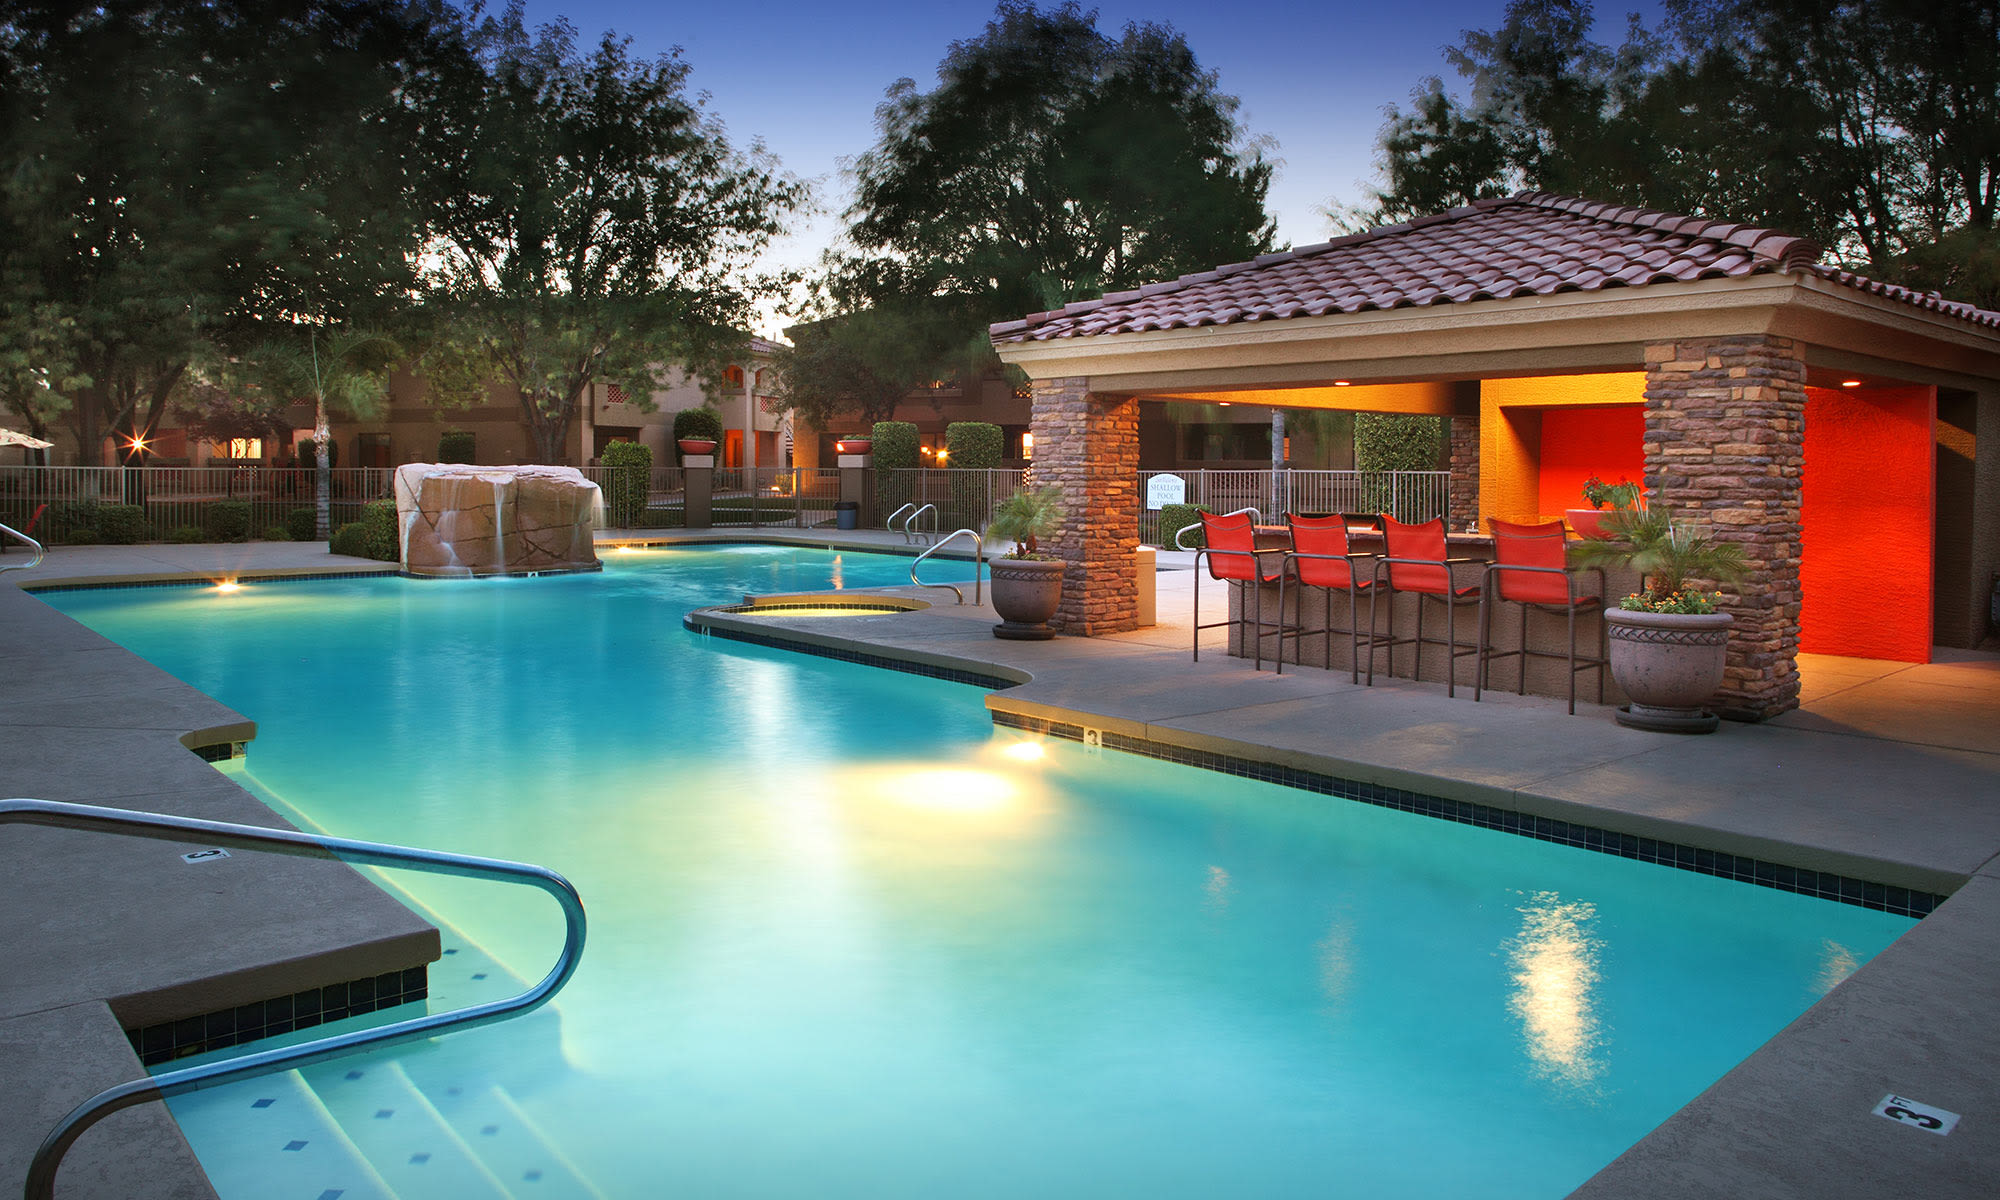 Swimming Pool at San Valiente Luxury Apartment Homes in Phoenix, AZ